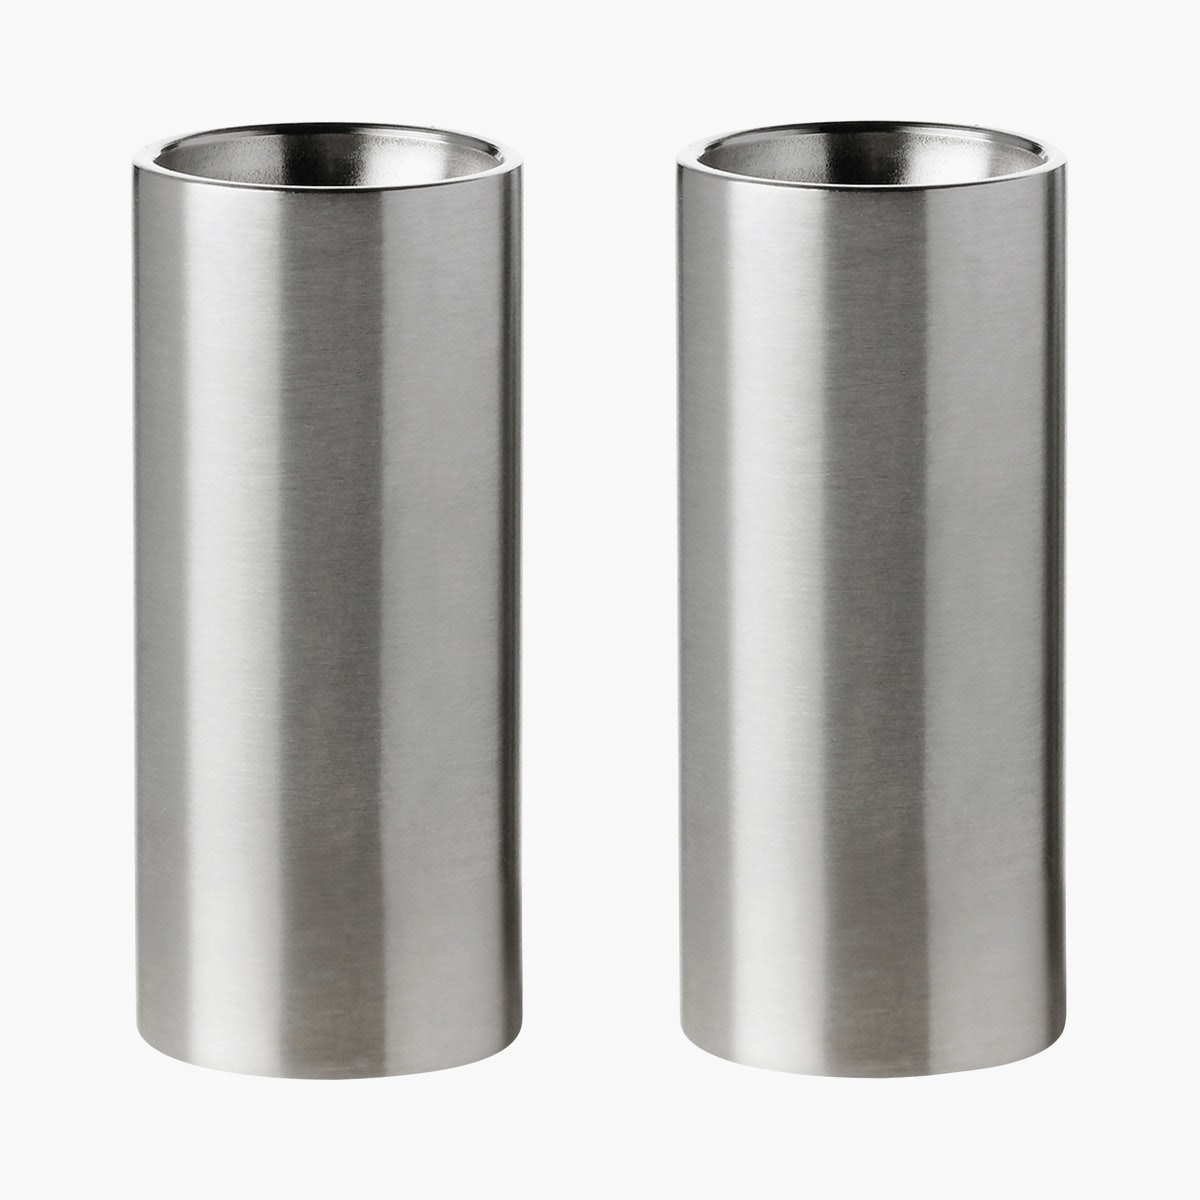 Cylinda Line Salt and Pepper Set